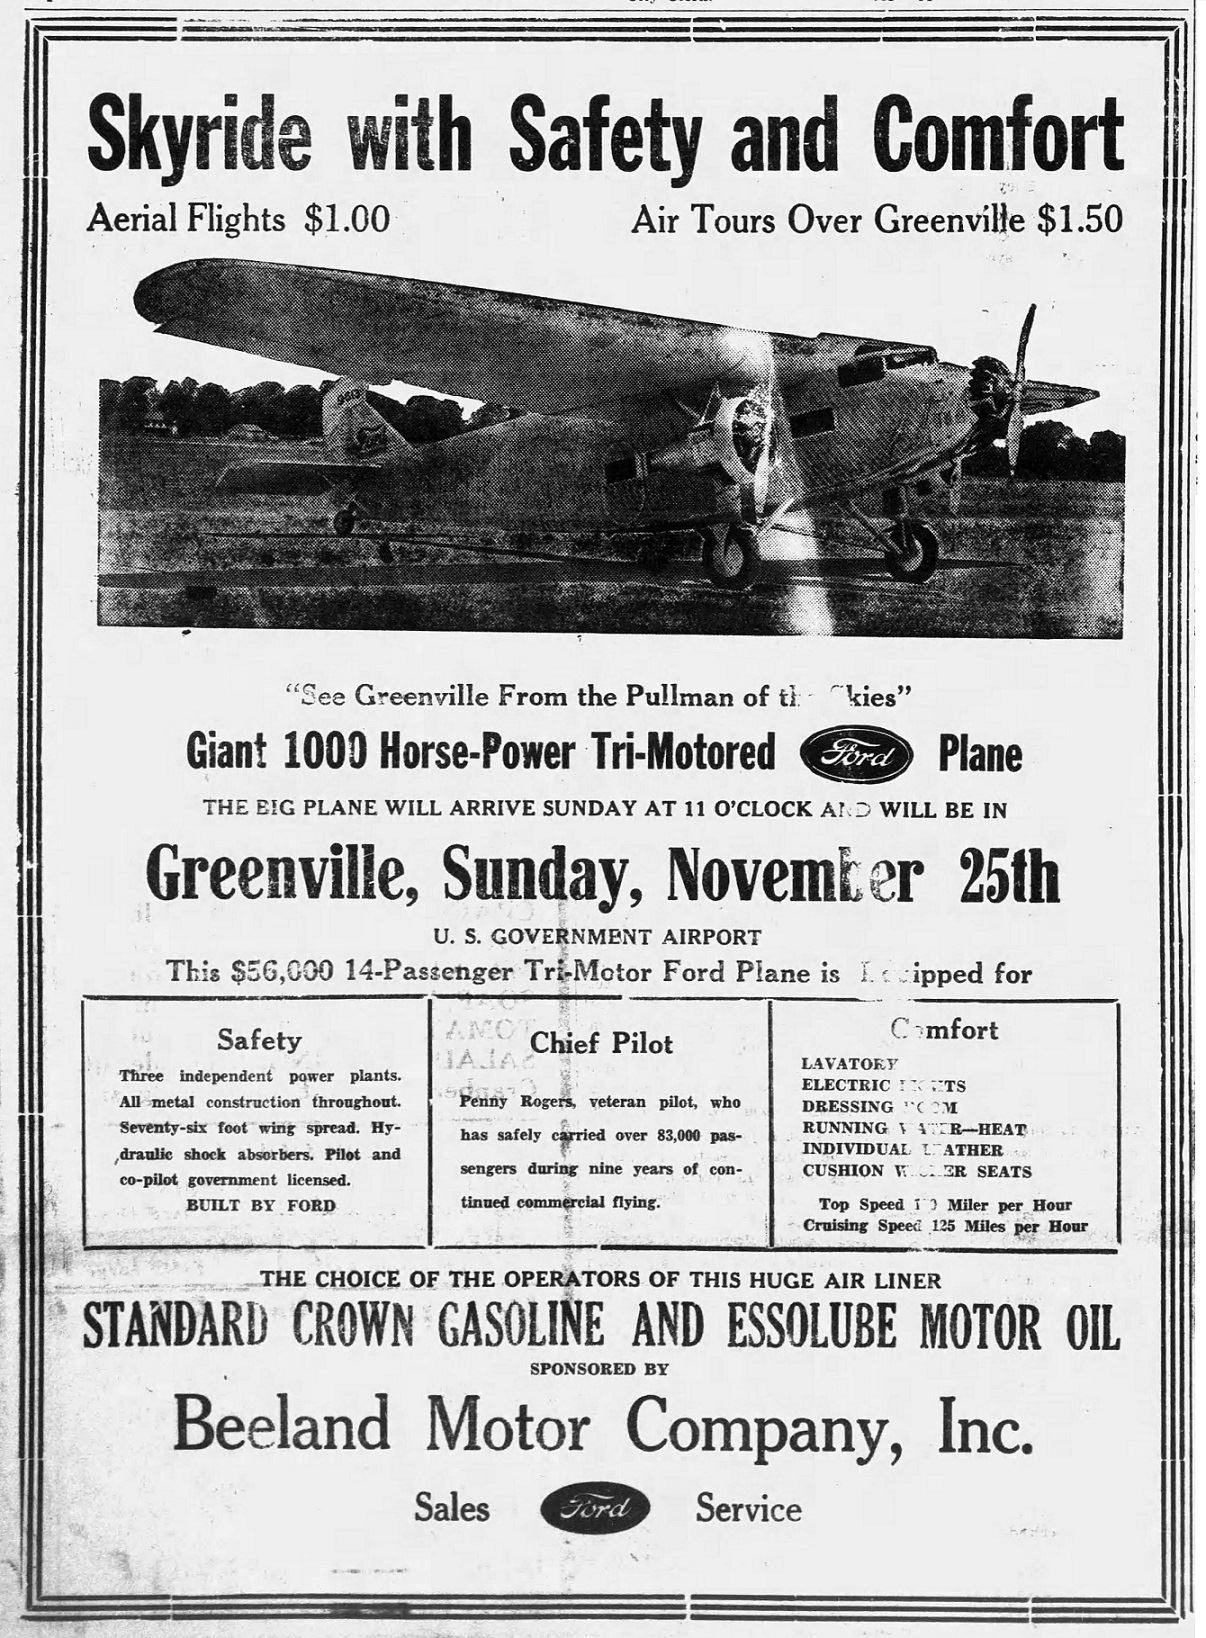 Airport sky rides ad - 11-23-1934 - The Advocate